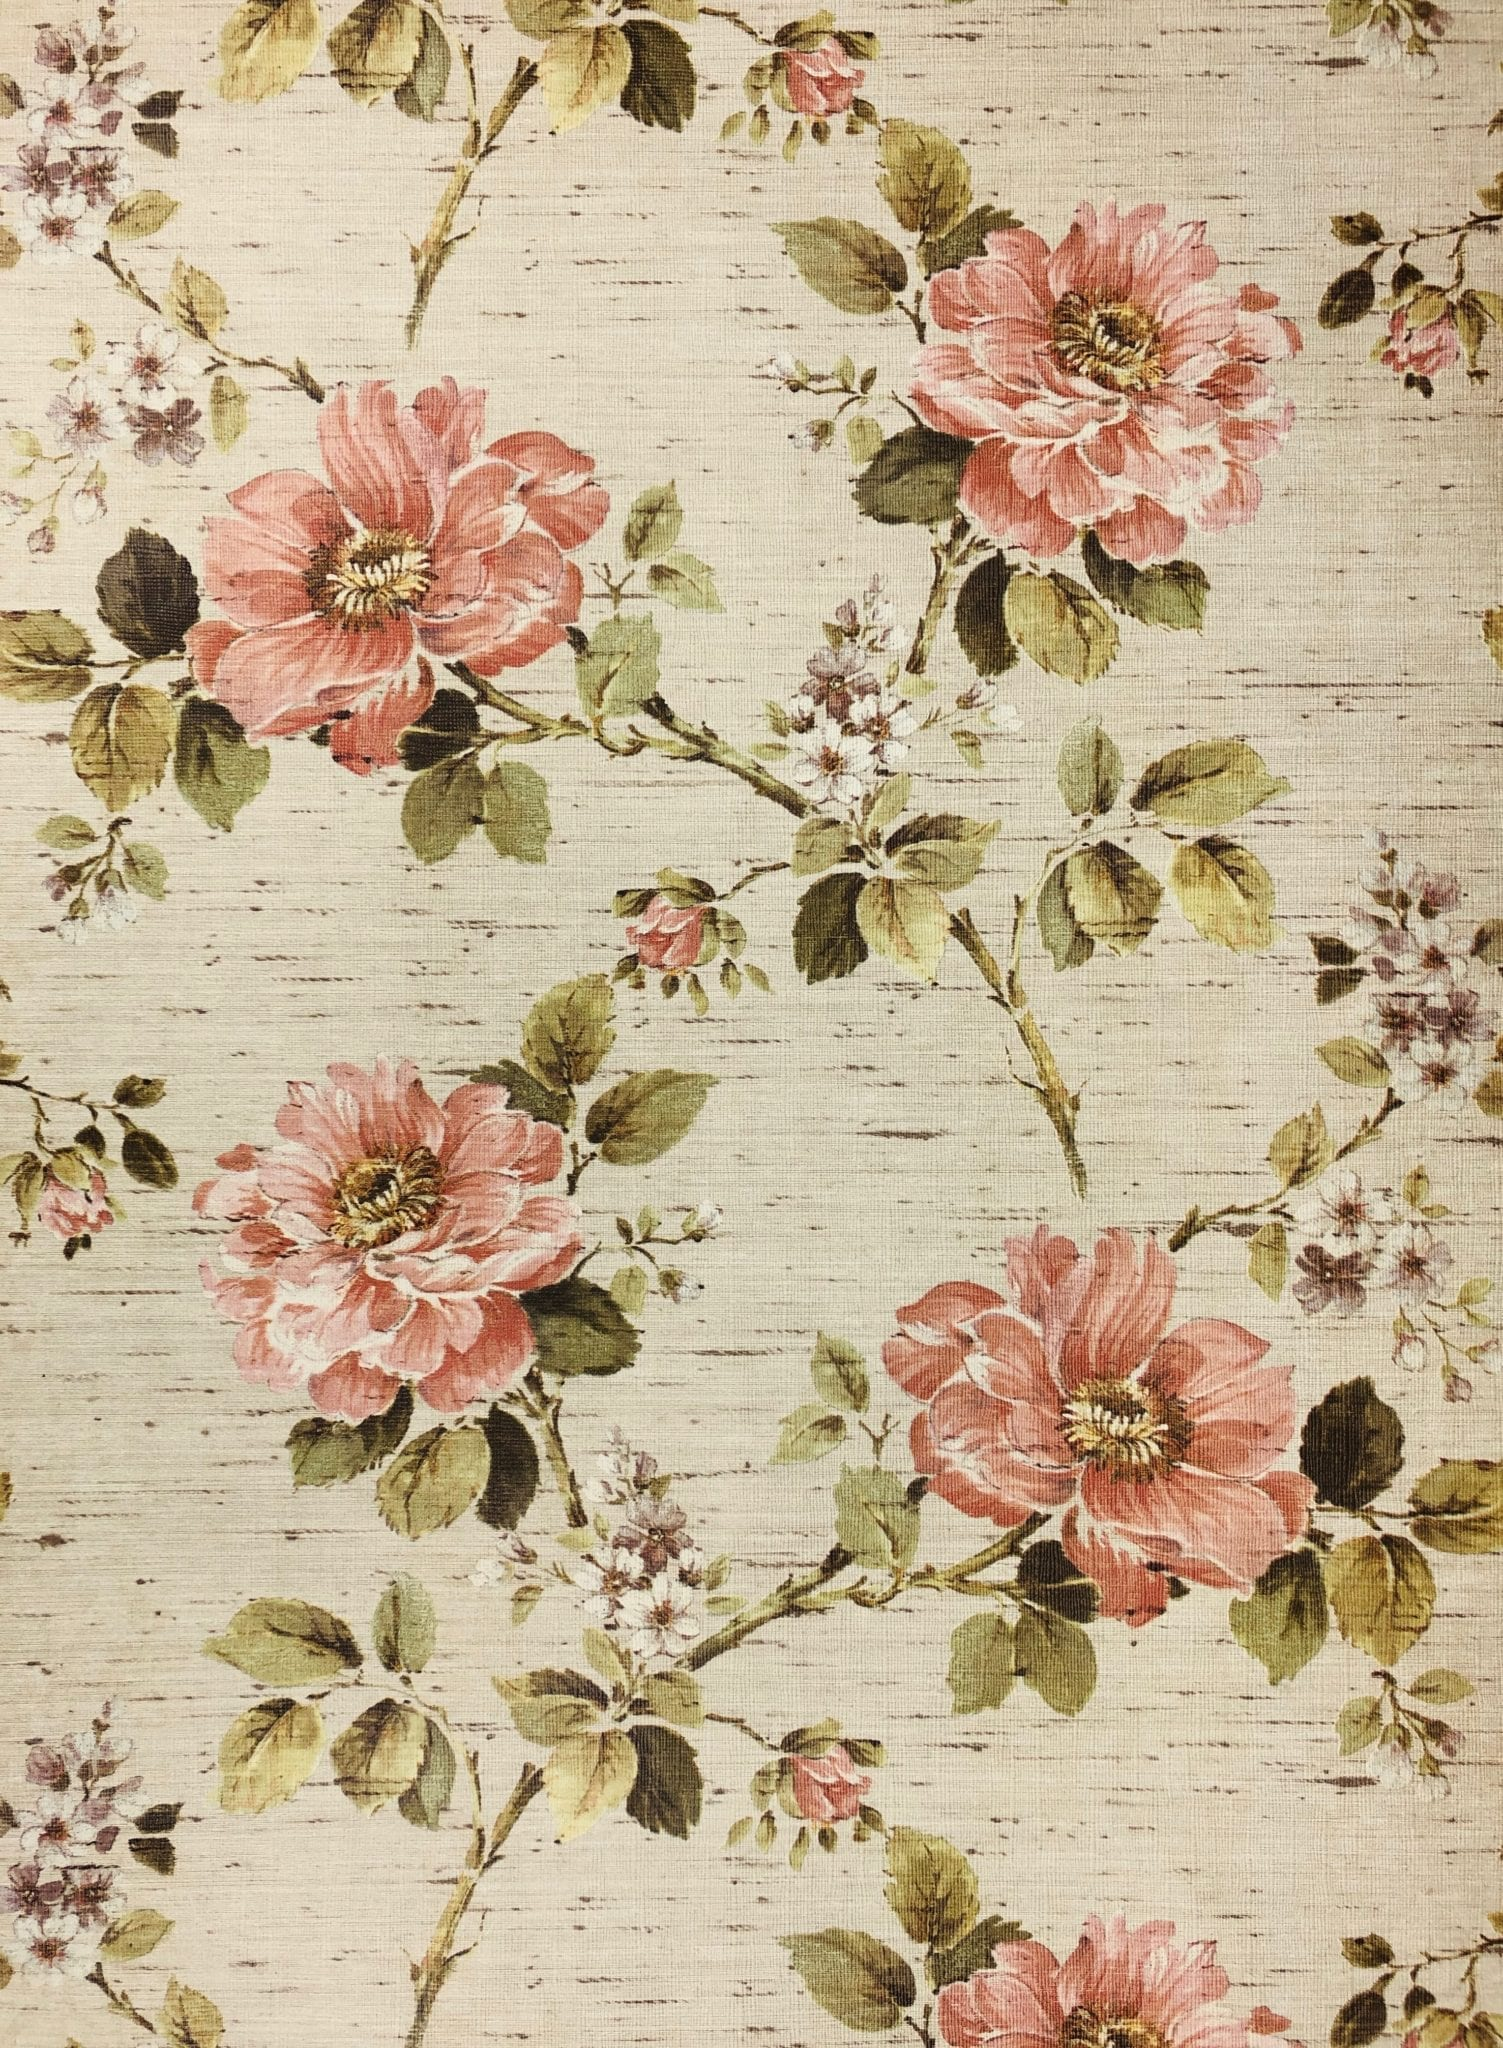 Wallpaper Flowers Vintage Posted By Ethan Anderson